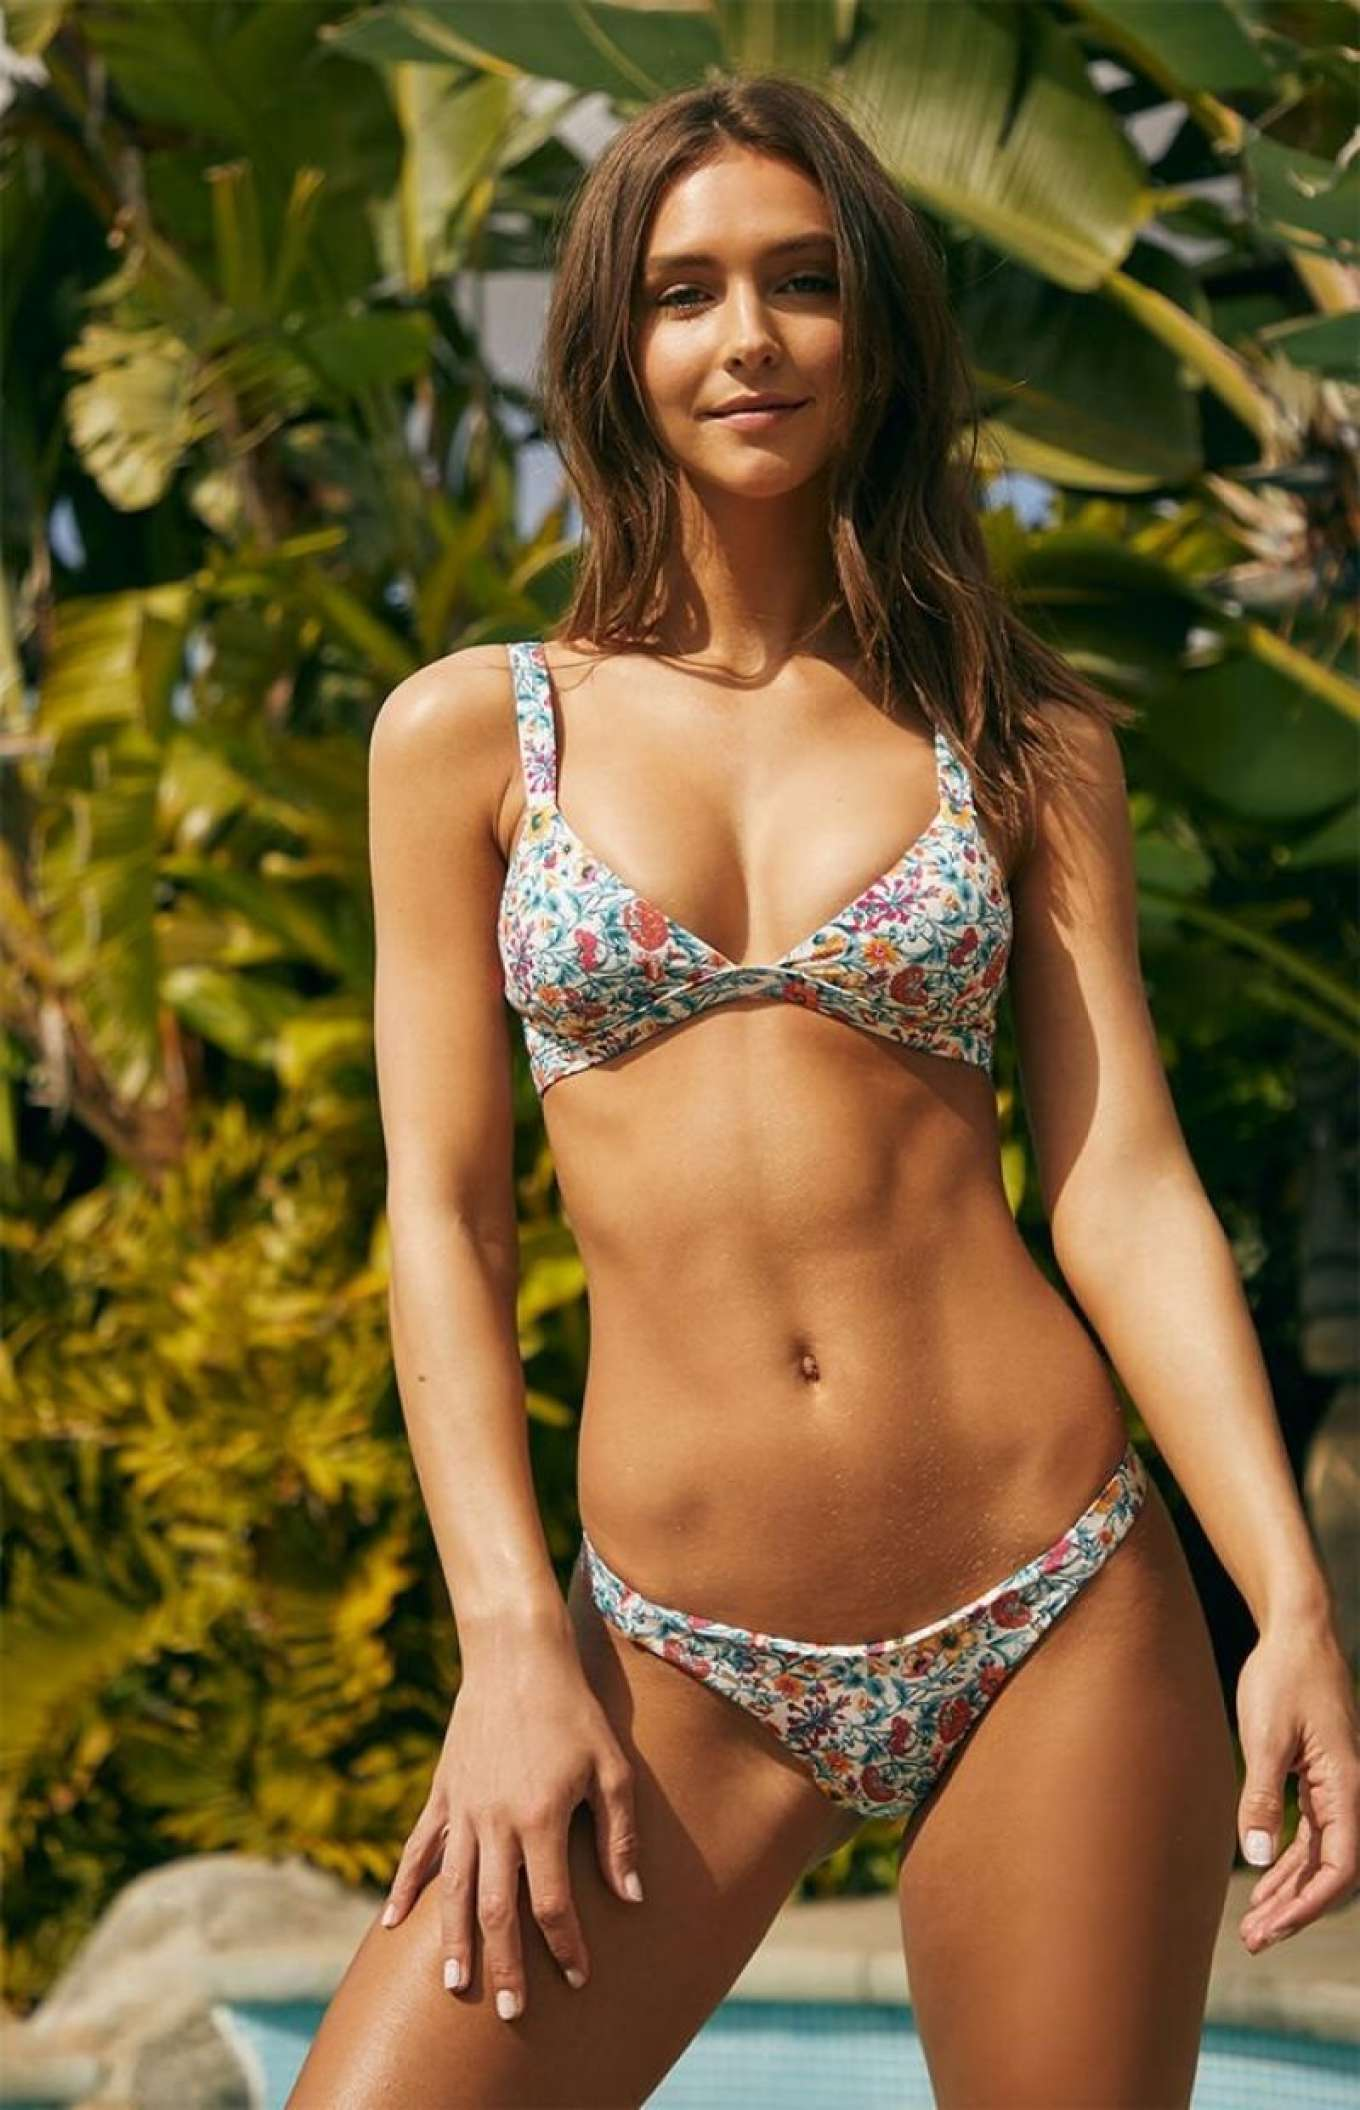 Rachel Cook 2019 : Rachel Cook – Photoshoot for Pacsun Swimwear 2019 collection-11